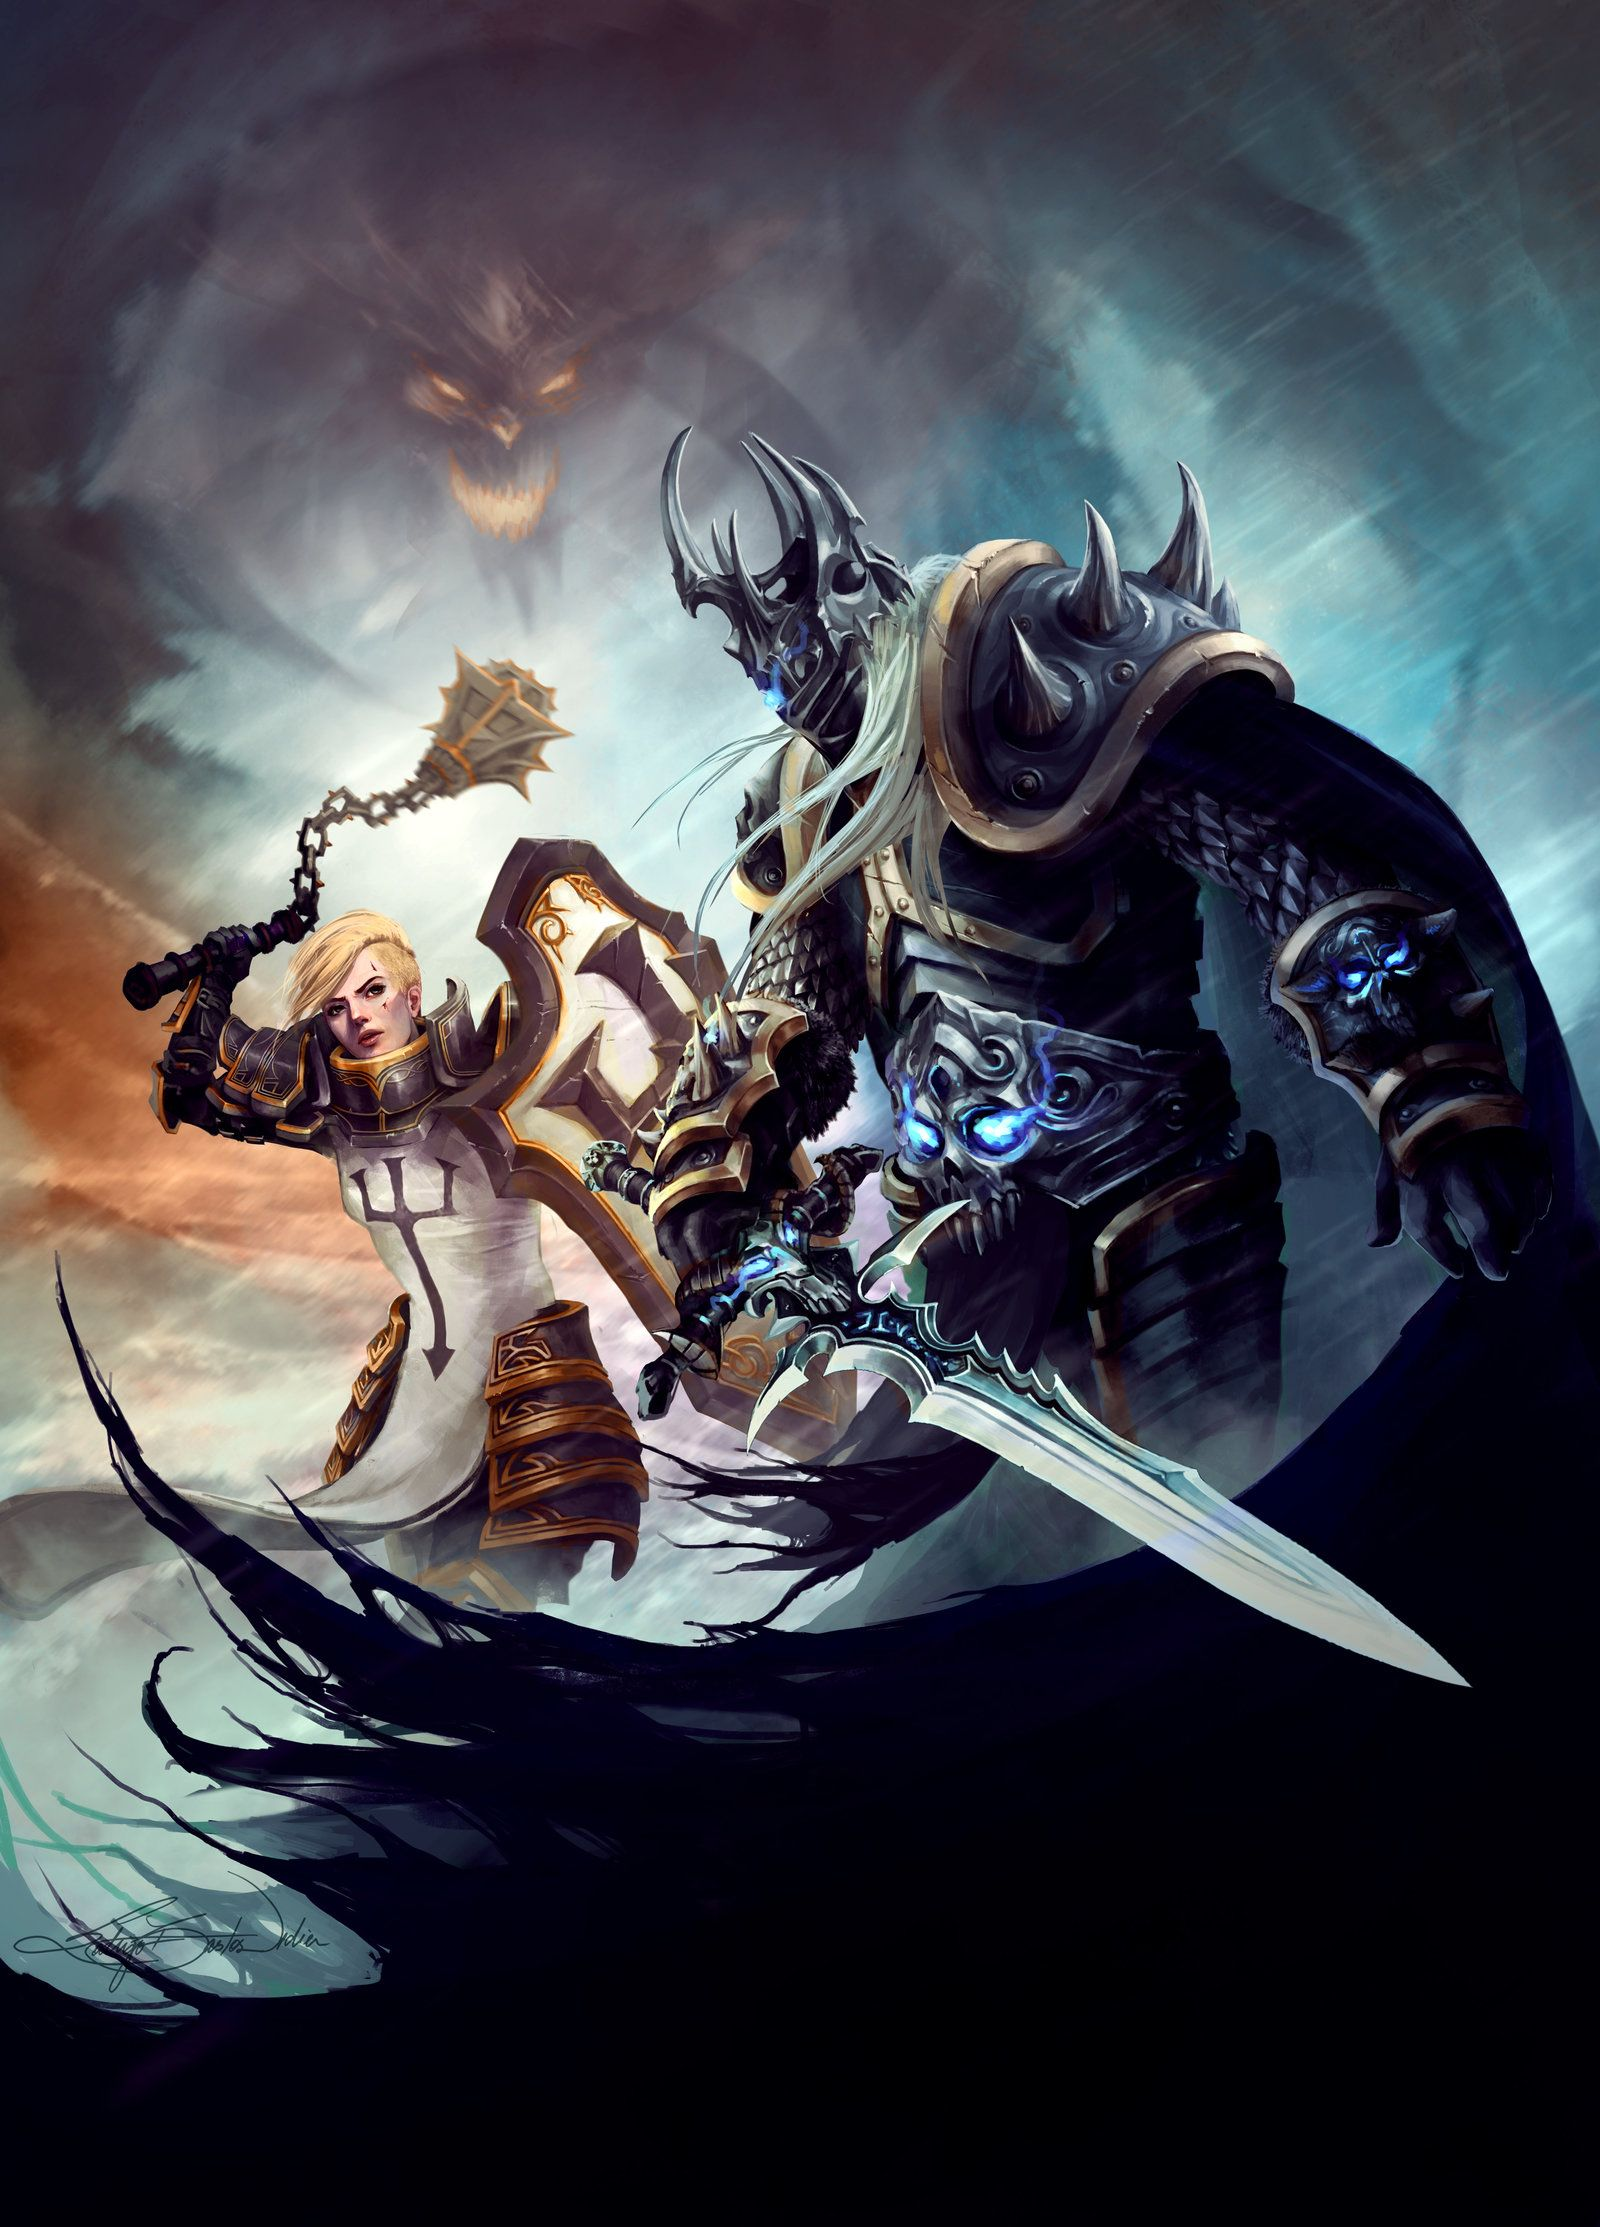 Heroes Of The Storm Johanna And Arthas Heroes Of The Storm Warcraft Art Hero Once the crown prince of lordaeron, and protégé of uther the lightbringer, arthas was corrupted by the cursed blade frostmourne in a bid to save his people. heroes of the storm warcraft art